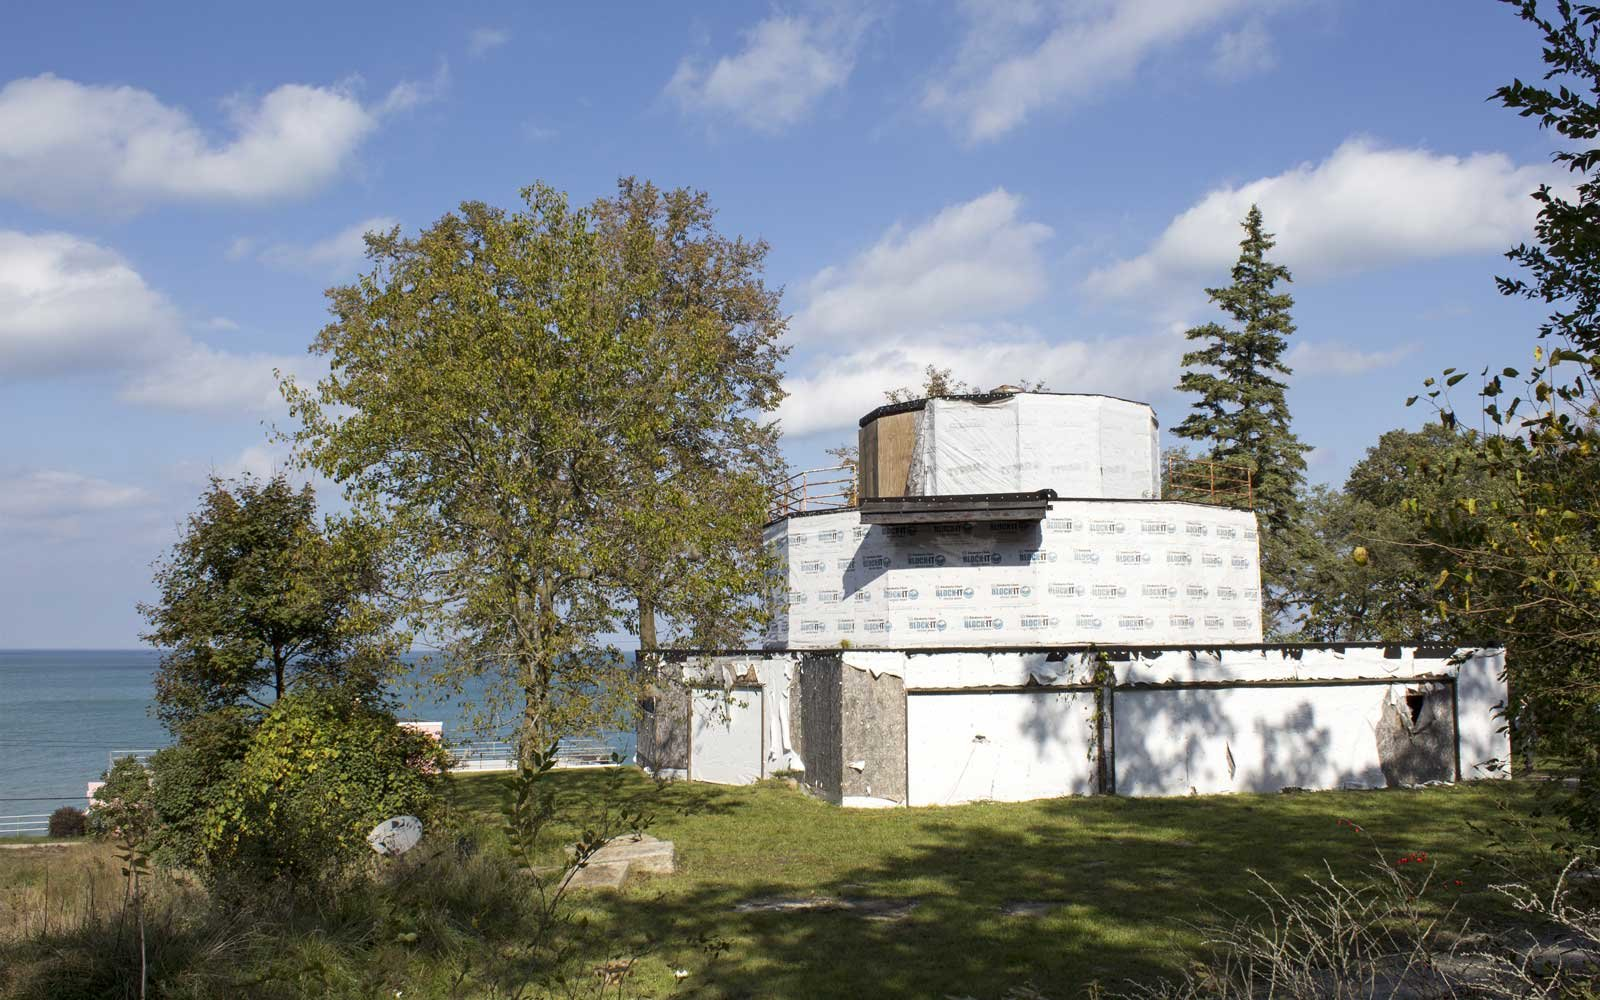 Exterior of the soon to be restored House of Tomorrow at Indiana Dunes